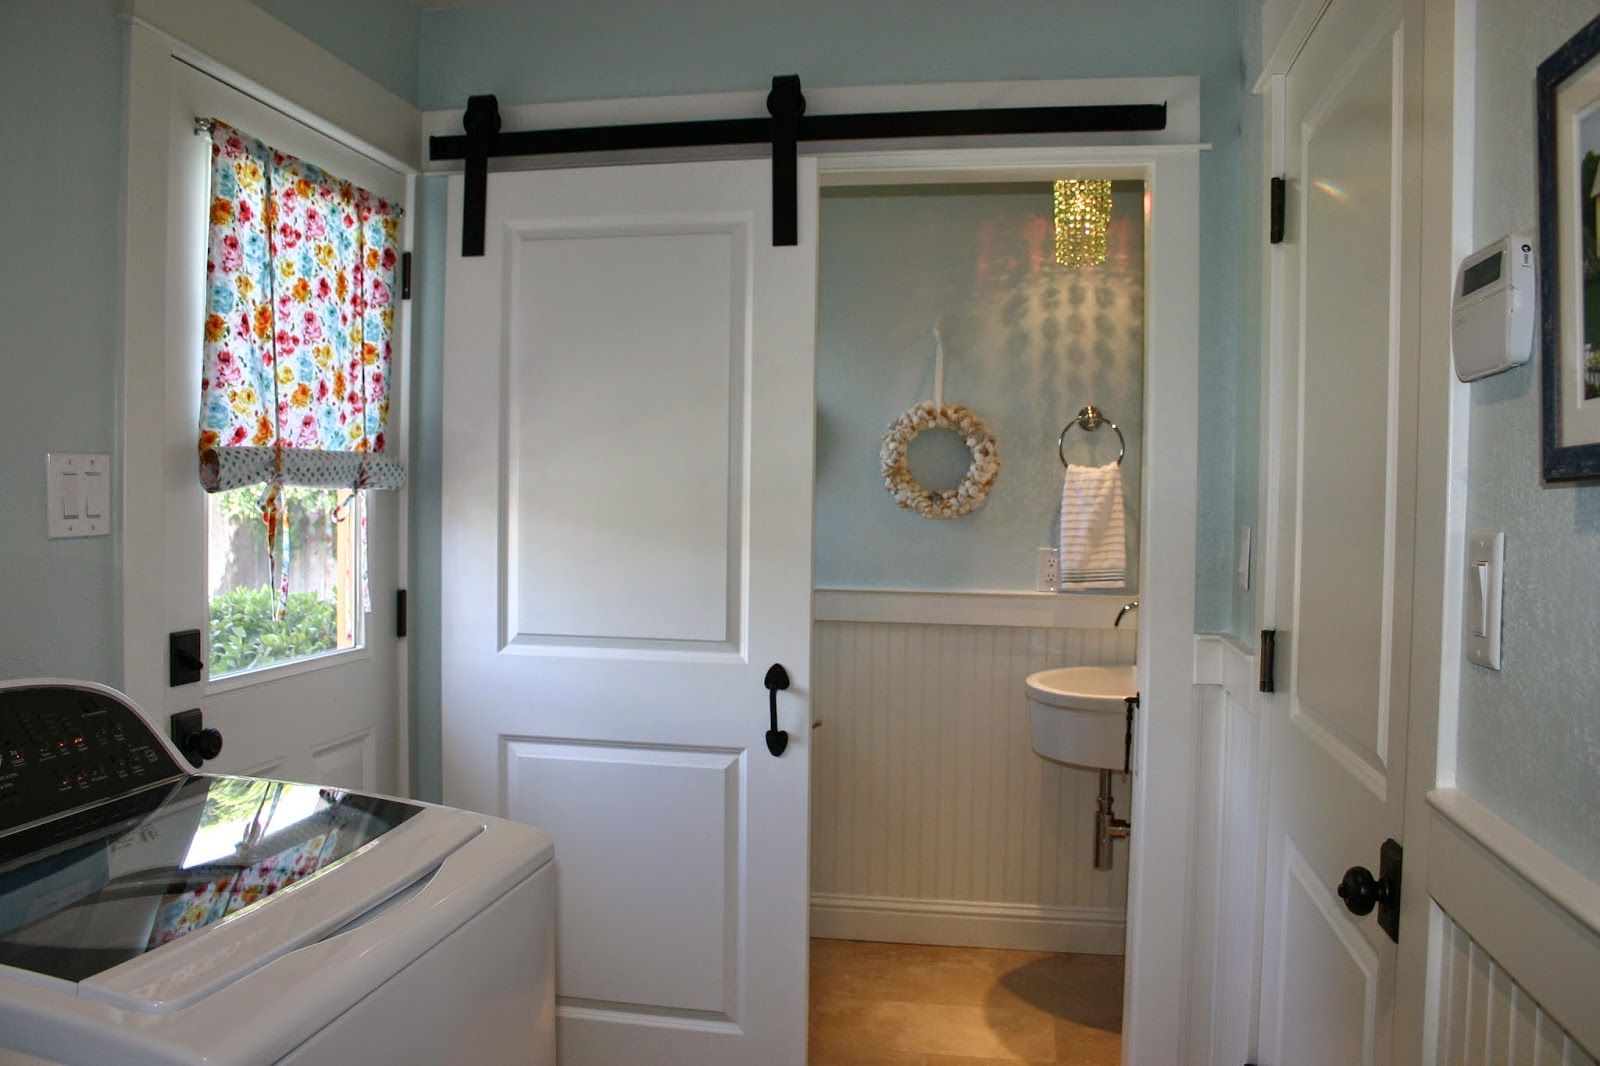 Laundry Powder Room Combo With Images Laundry Room Bathroom